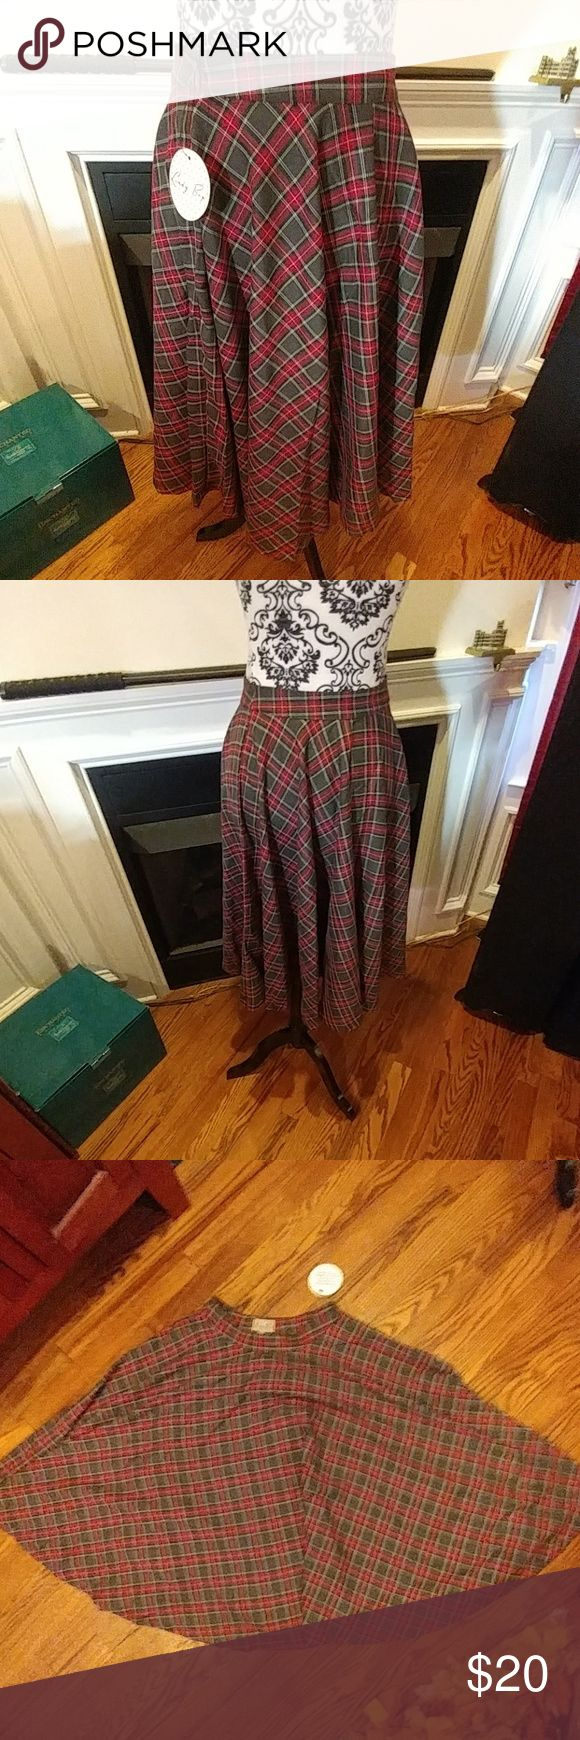 """NWT Lindy Bop Peggy Circle Skirt in Grey Tartan New with tags. Waist 13"""" flat. Very full skirt. UK 8/US 4. Modcloth Skirts Circle & Skater"""